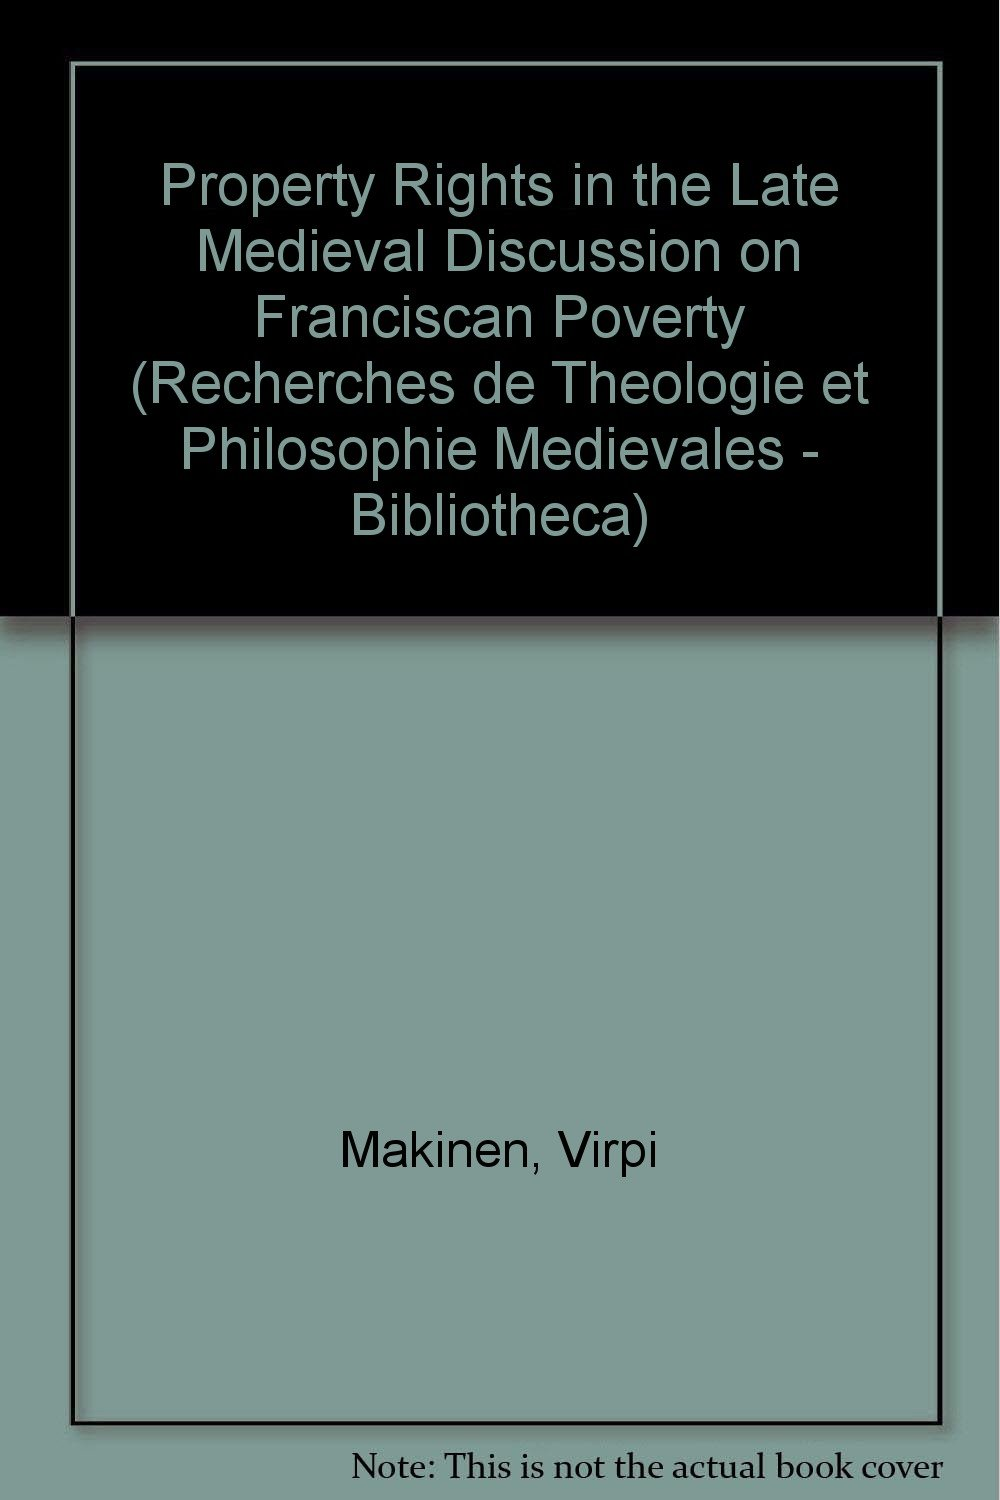 Property Rights in the Late Medieval Discussion on Franciscan Poverty (Recherches de Theologie et Philosophie Medievales - Bibliotheca)